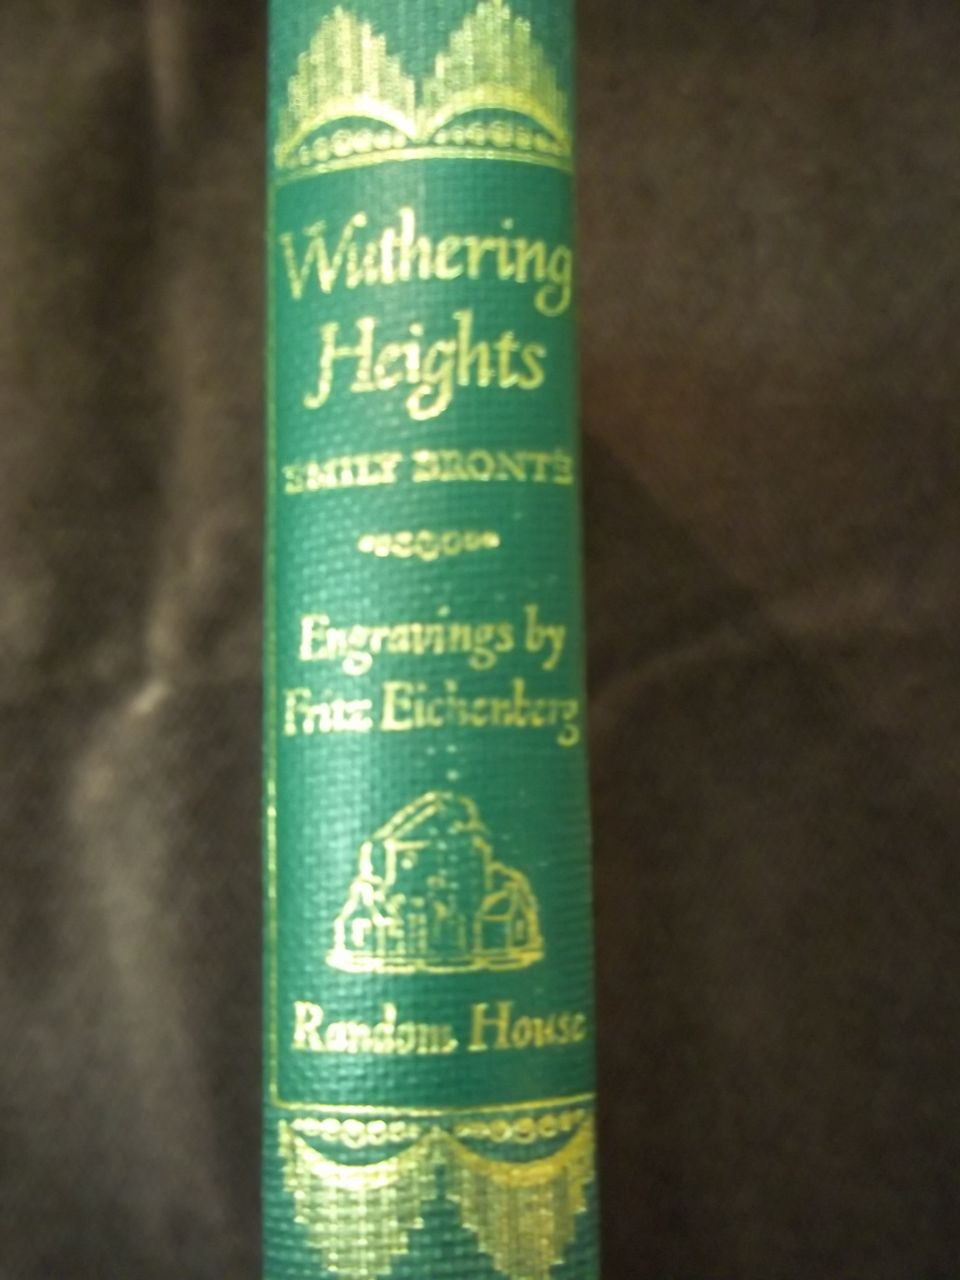 Wuthering Heights by Emily Bronte, Illustrated Random House ed., 1943